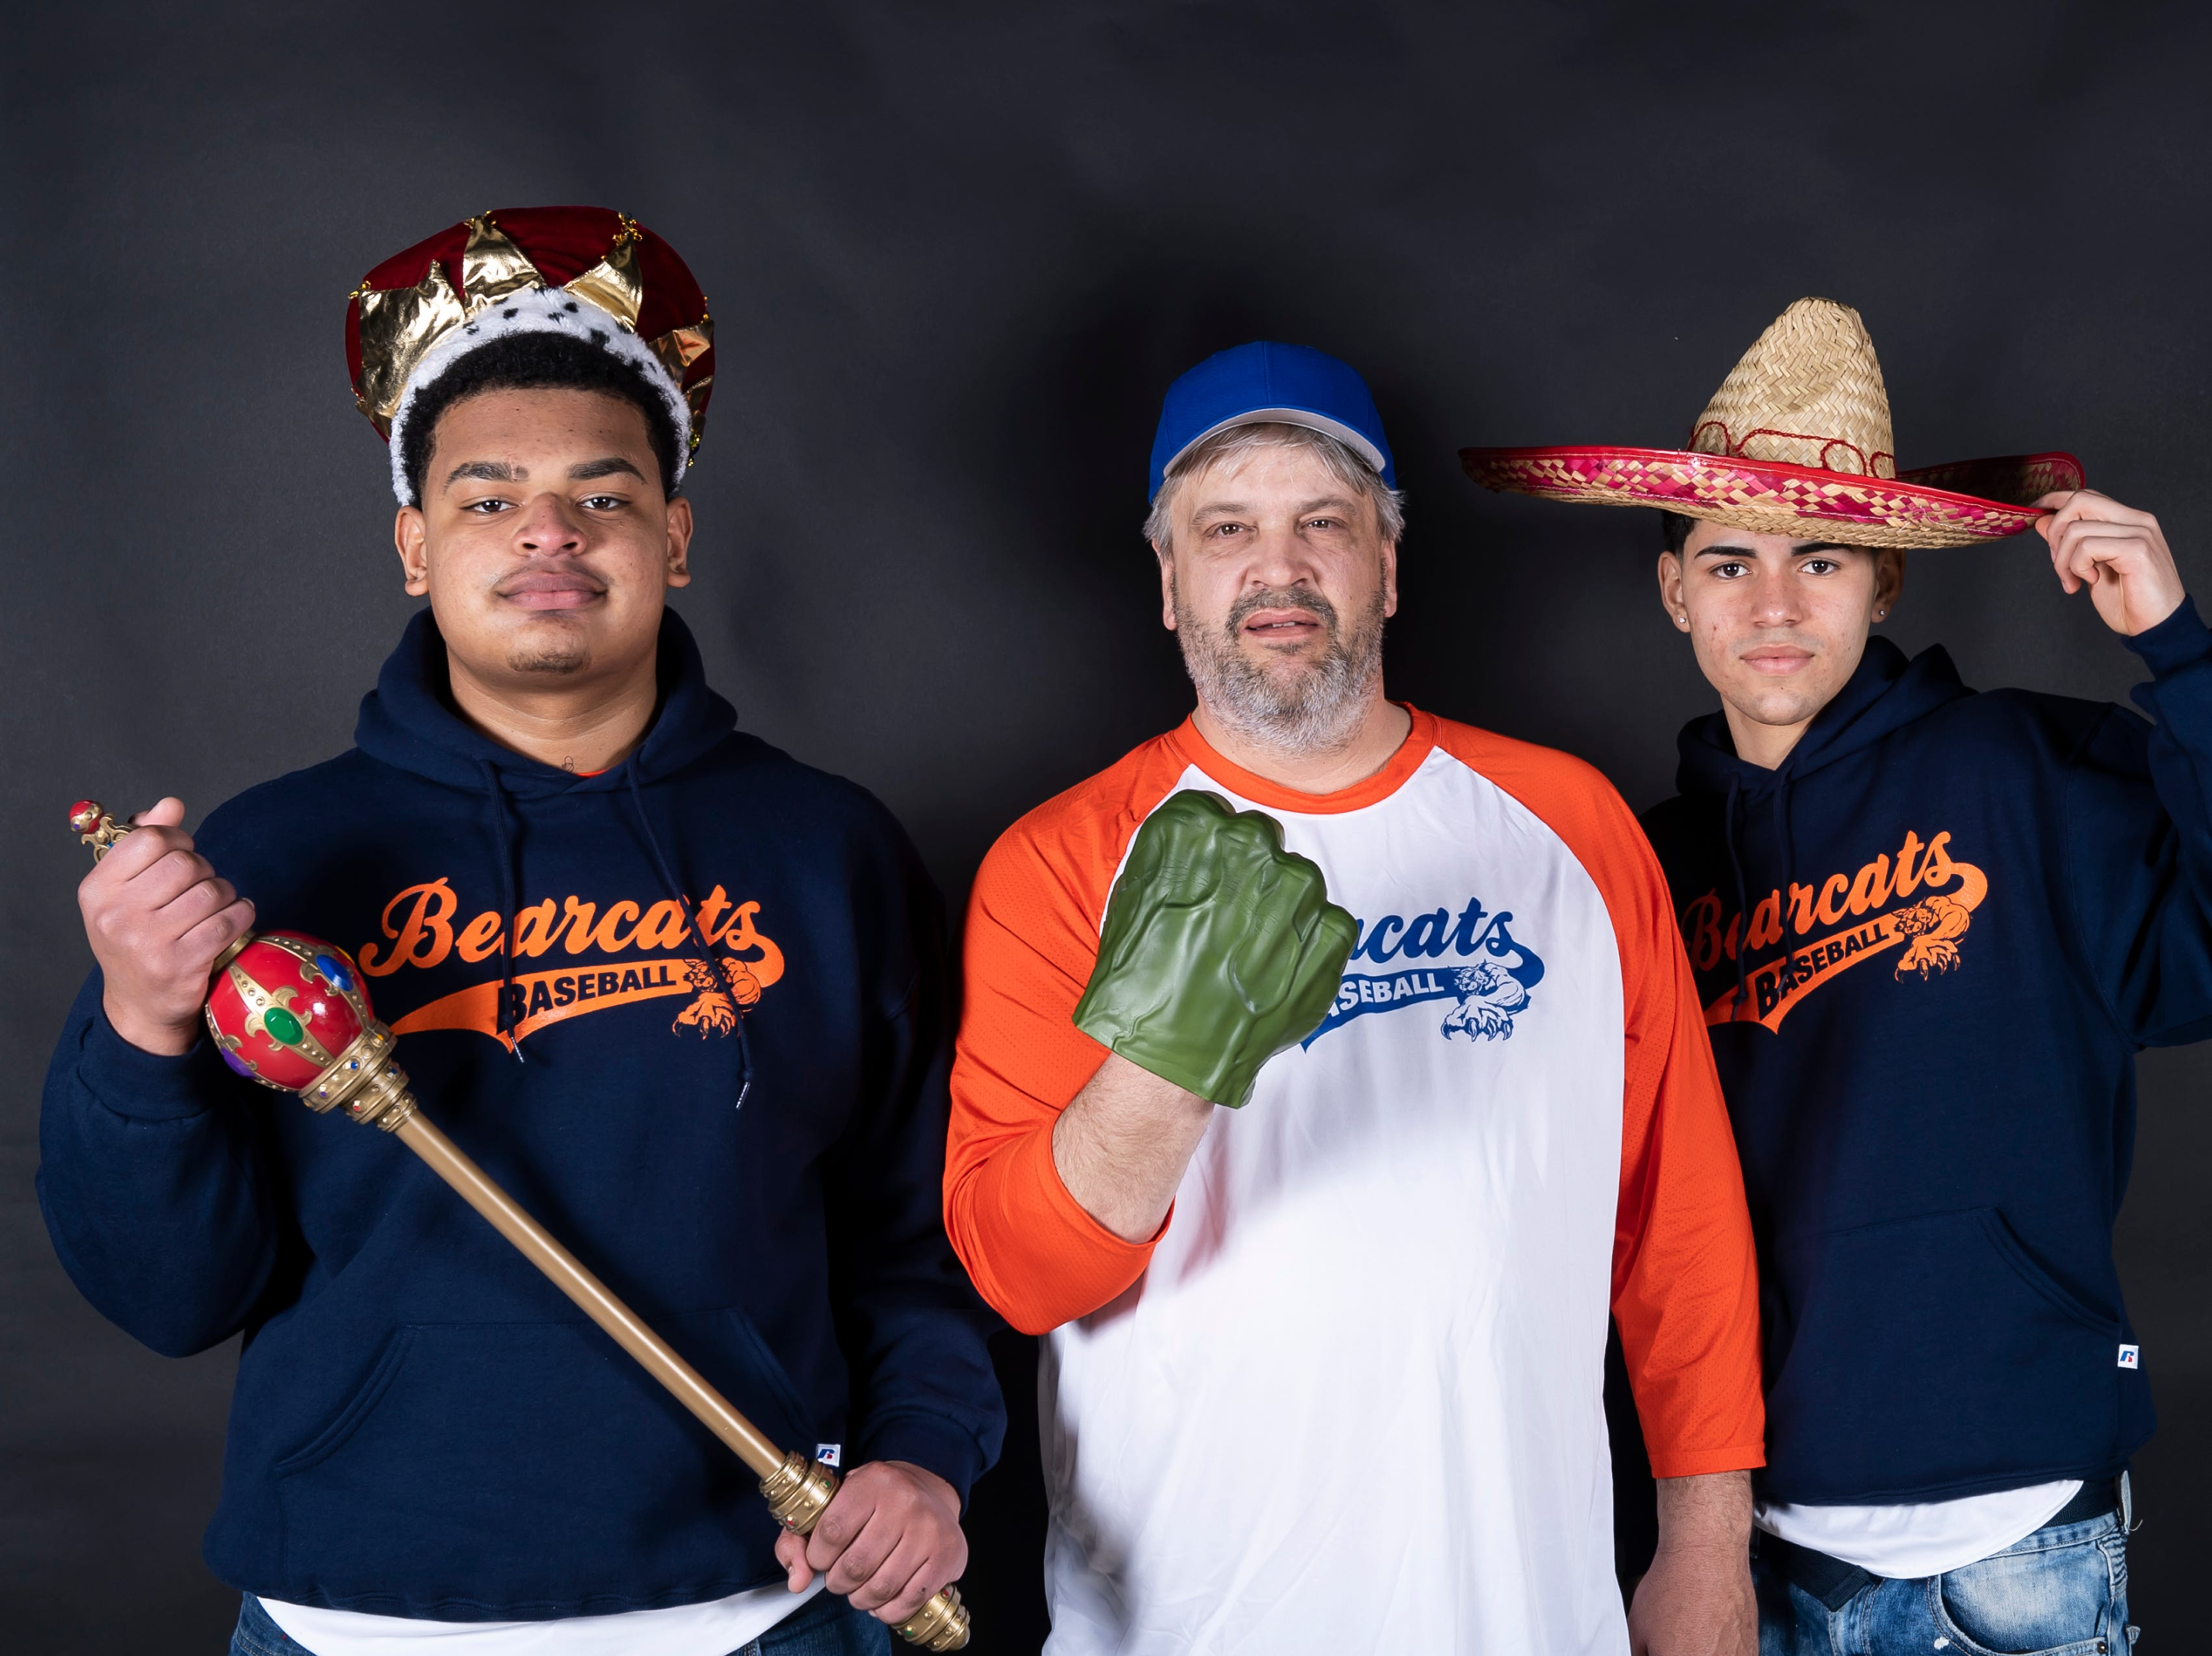 (From left) York High baseball's Joseph Garabito, coach Dave Carr and Bryan Seda strike a pose in the GameTimePA photo booth during spring sports media day in York Sunday, March 10, 2019.